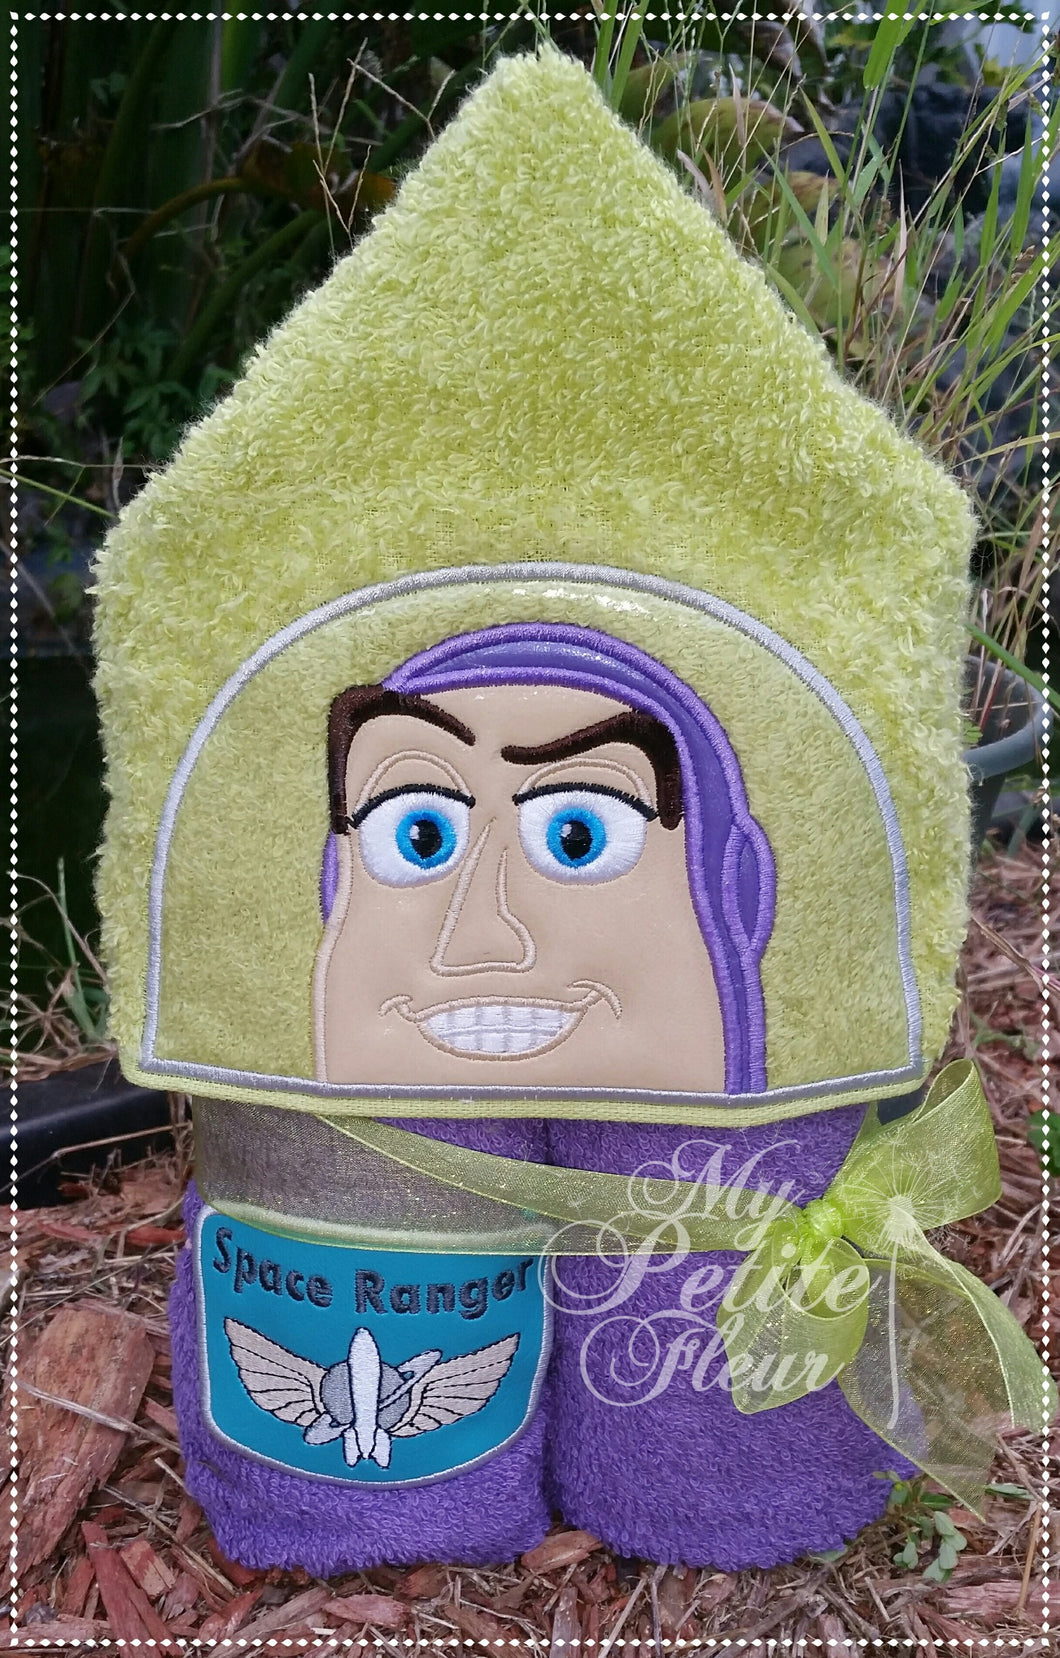 Buzz Lightyear Hooded Towel